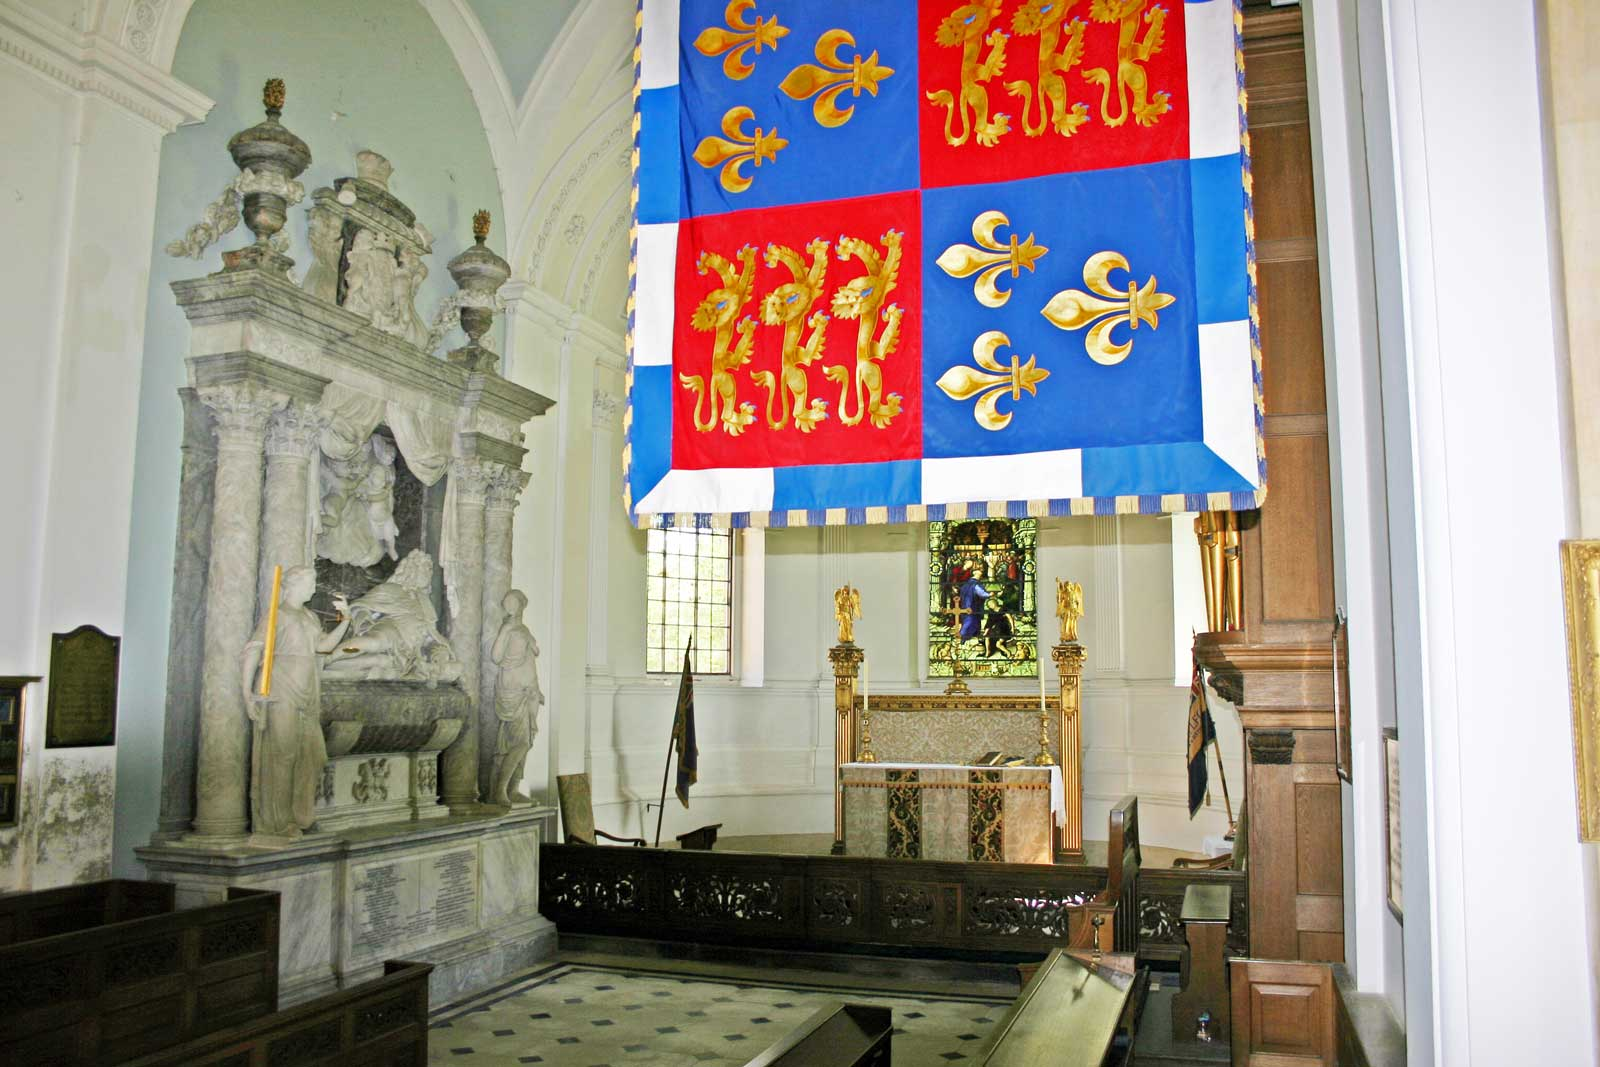 The Chancel Viewed From the Pulpit